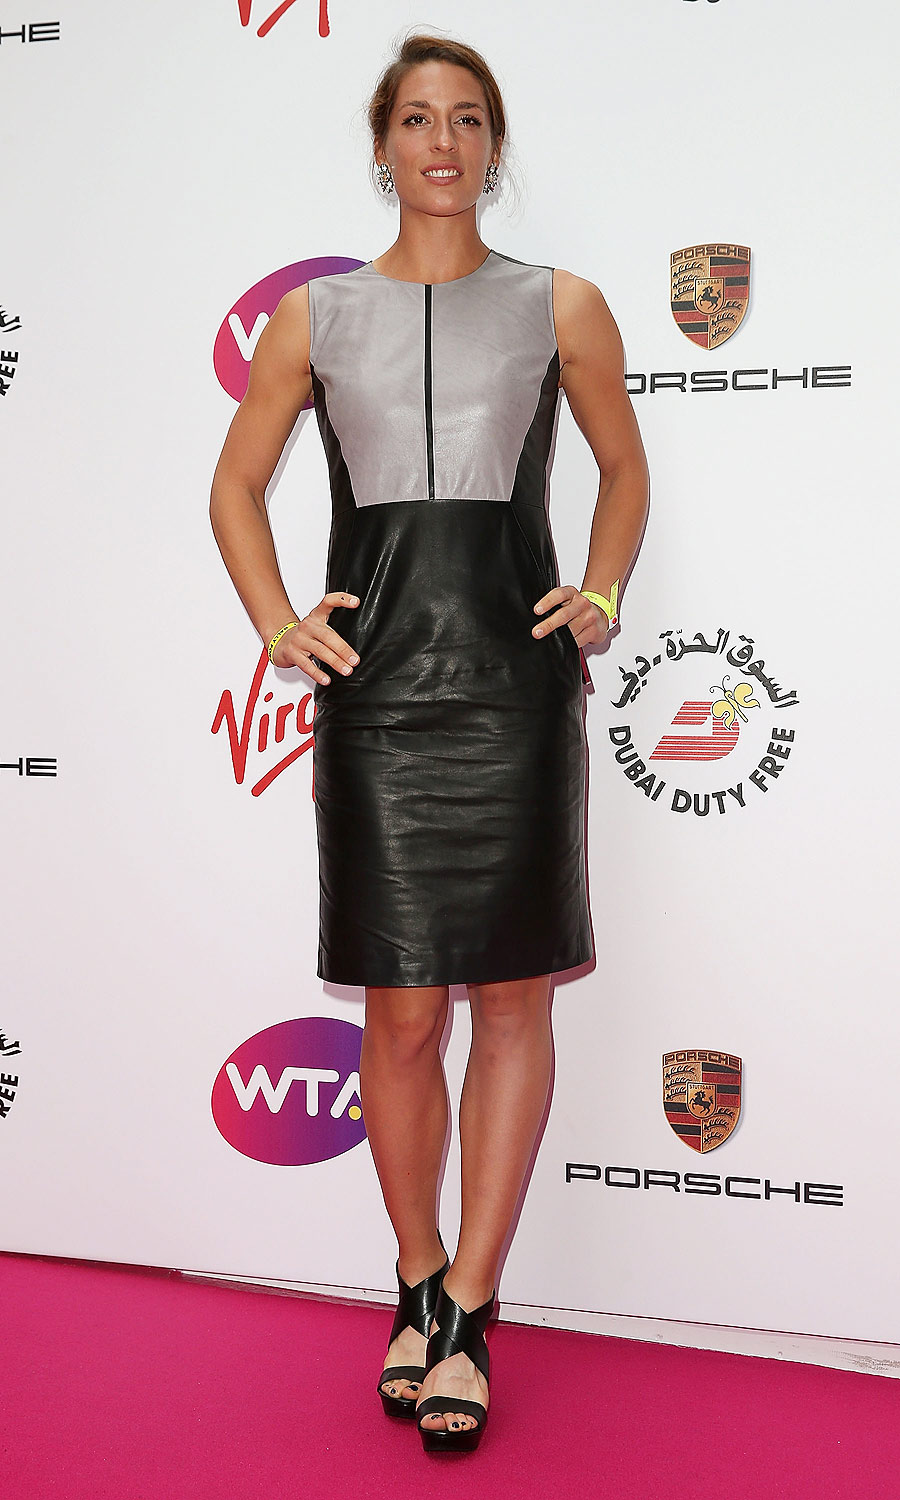 Andrea Petkovic: The German spotted her leather Hugo Boss dress at the Frankfurt airport on the way to London that day.